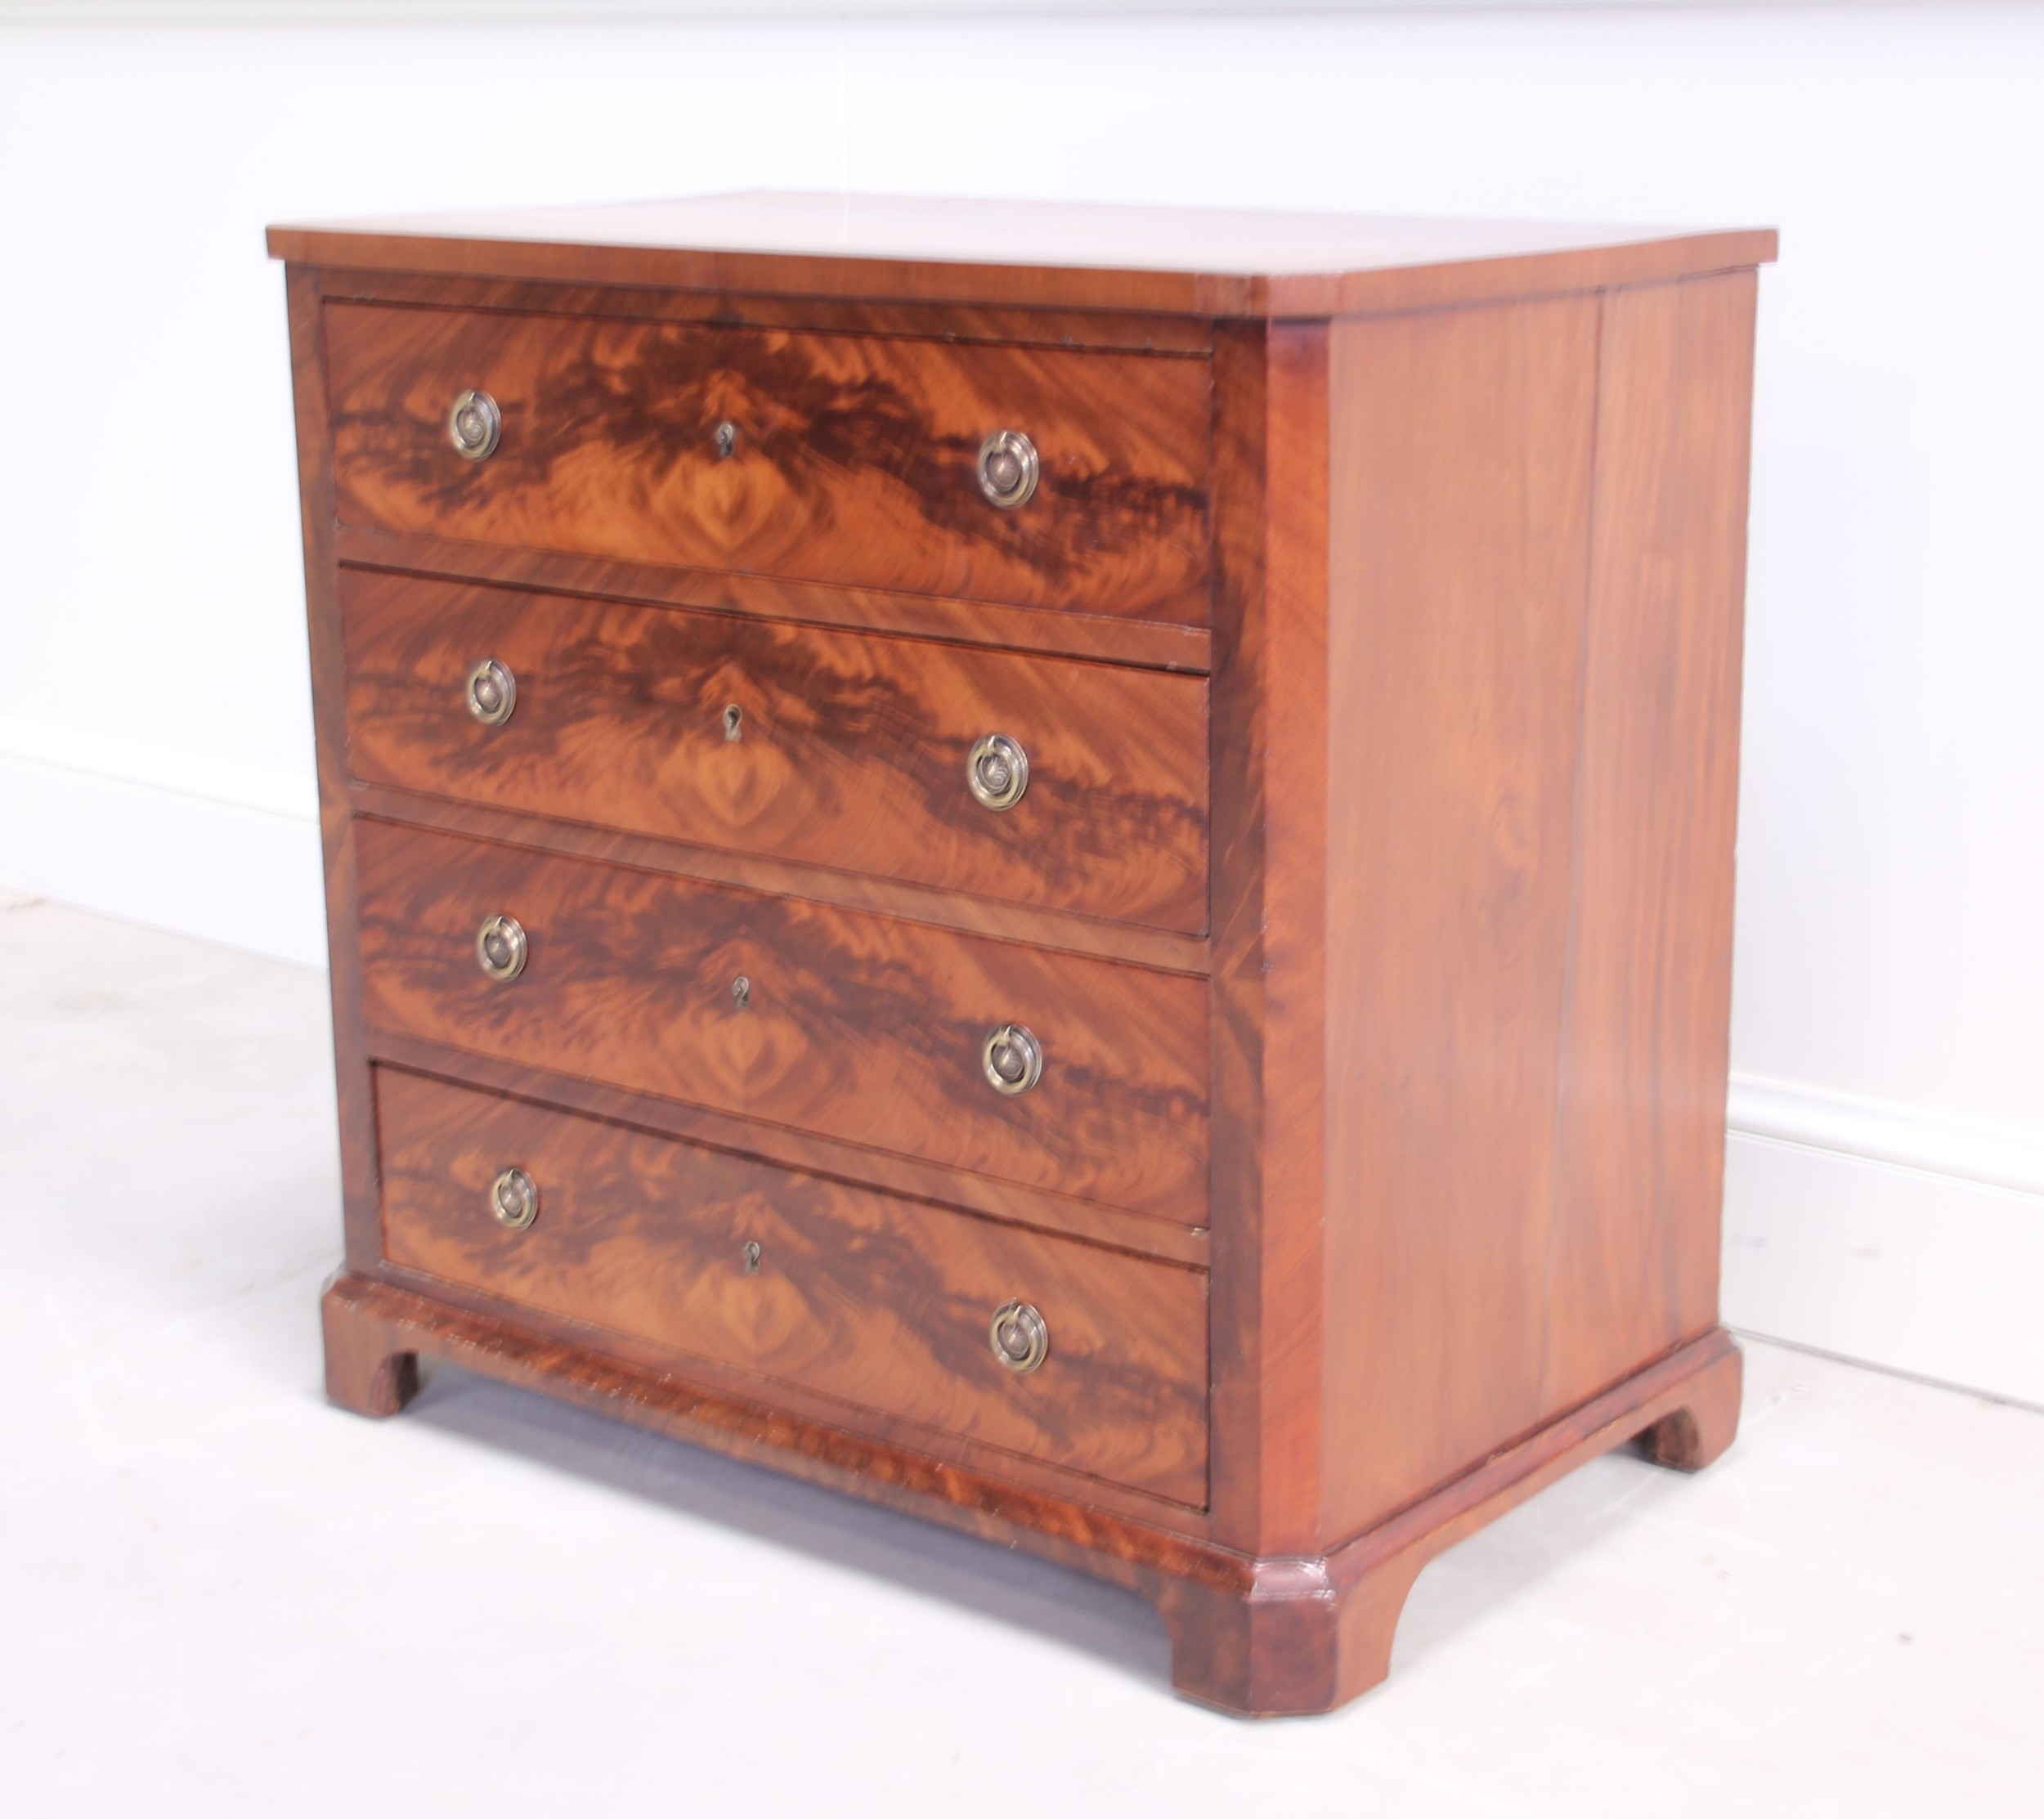 a 19th century mahogany chest of drawers